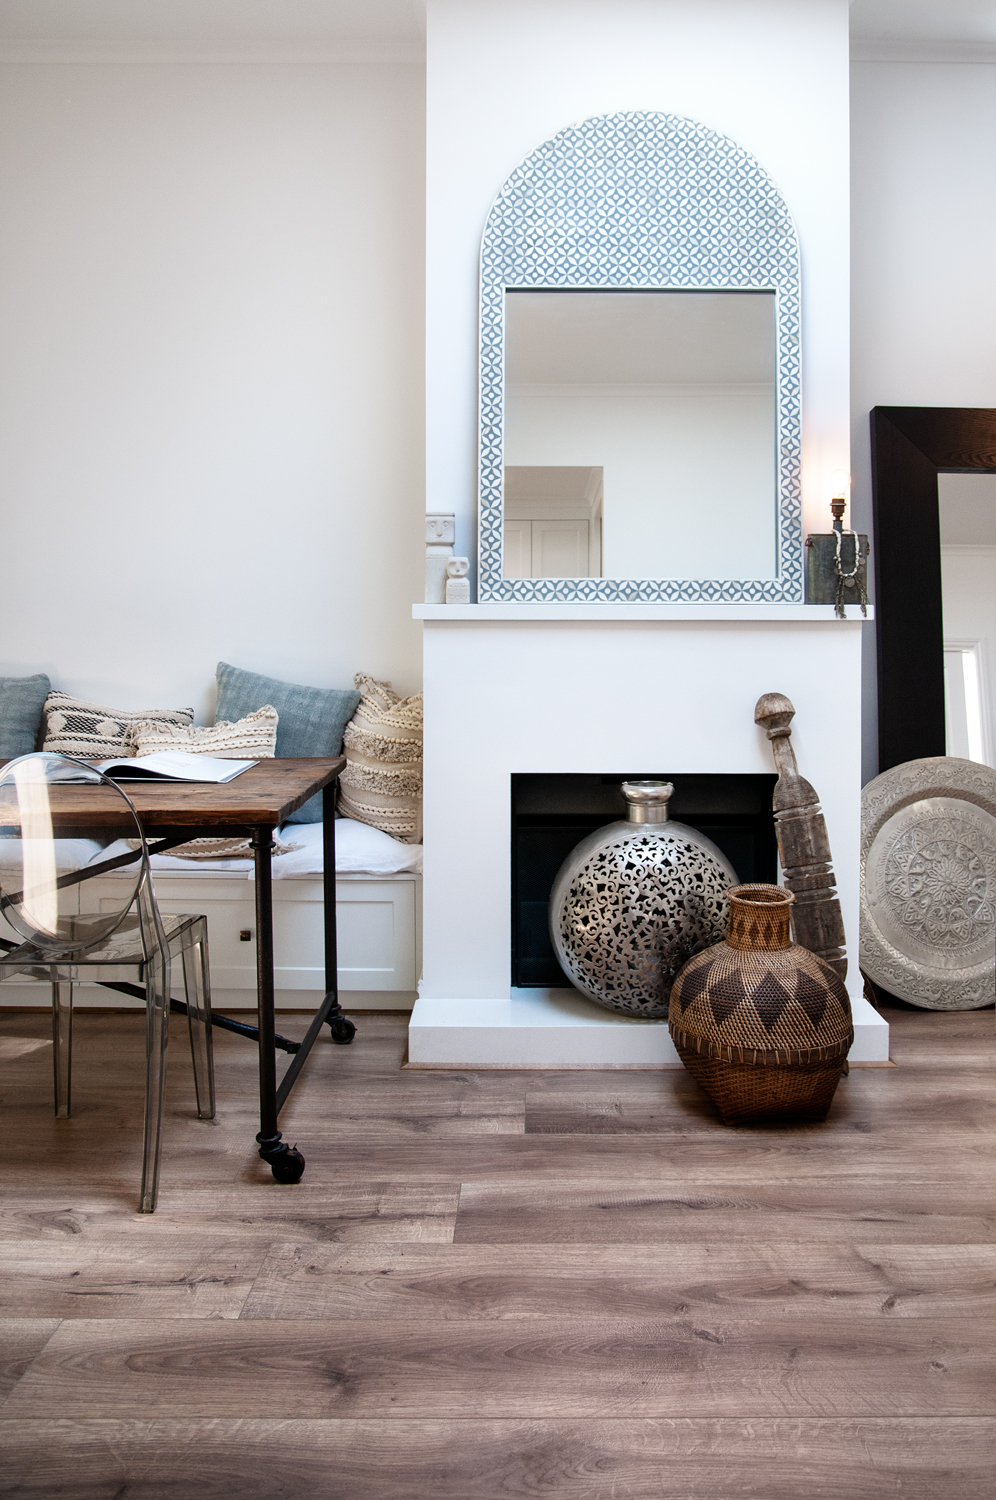 White fireplace with a mediterranean style mirror on the mantlepiece and an array of decorative pots on the floor